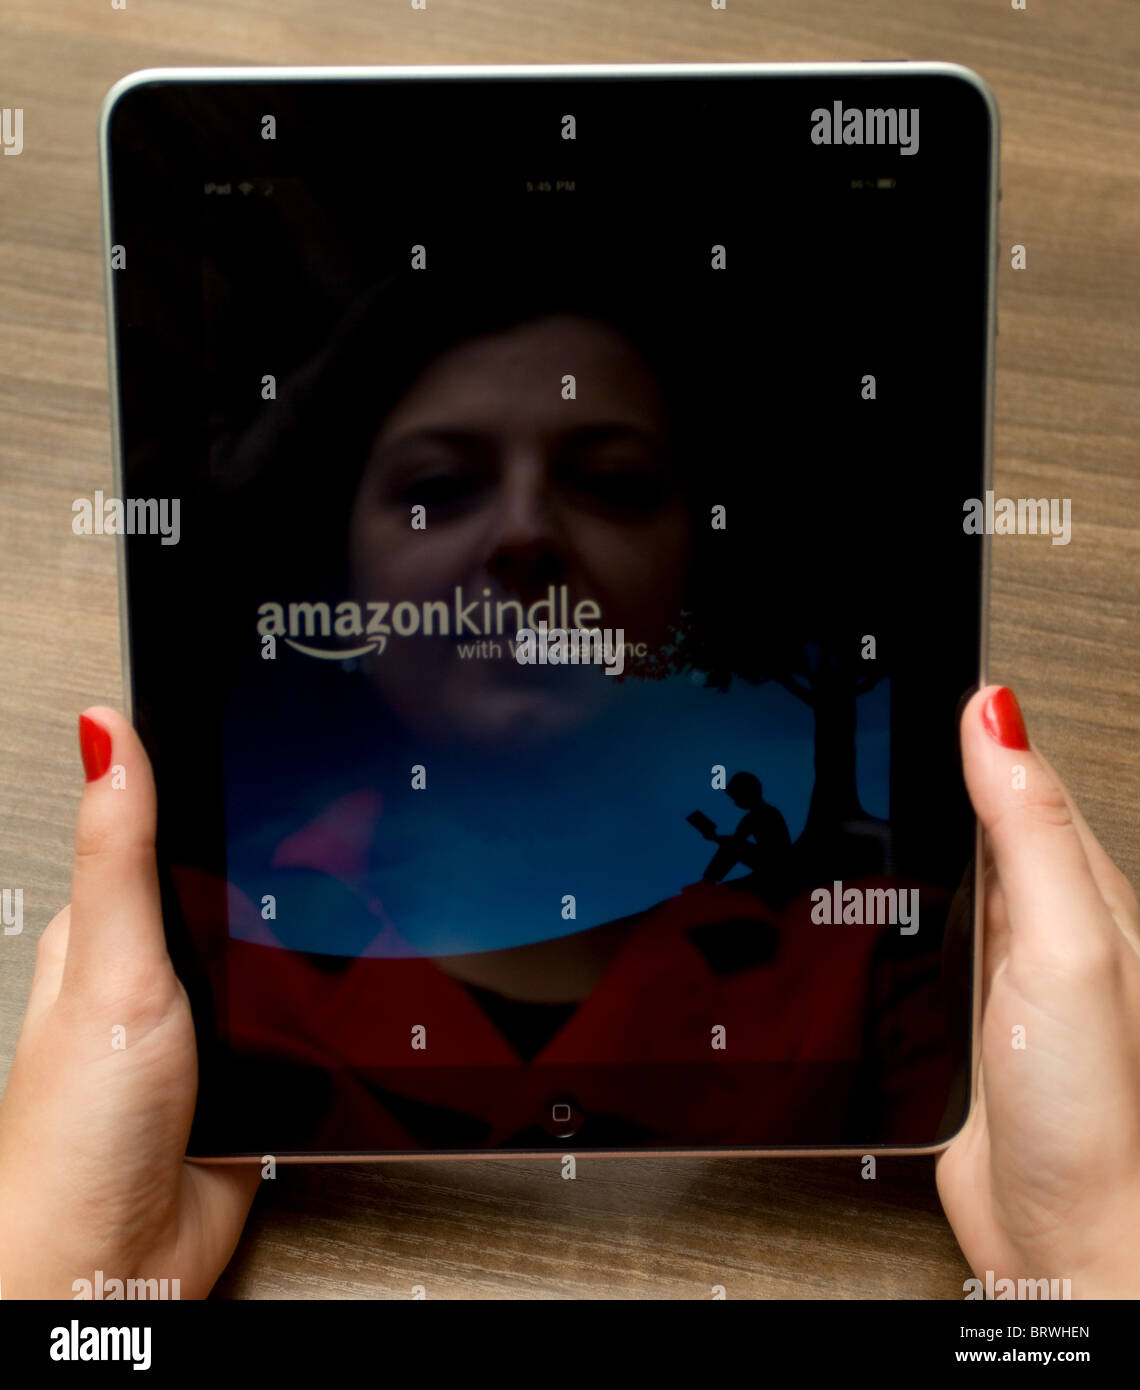 Woman's hands holding an Apple iPad with her reflection in